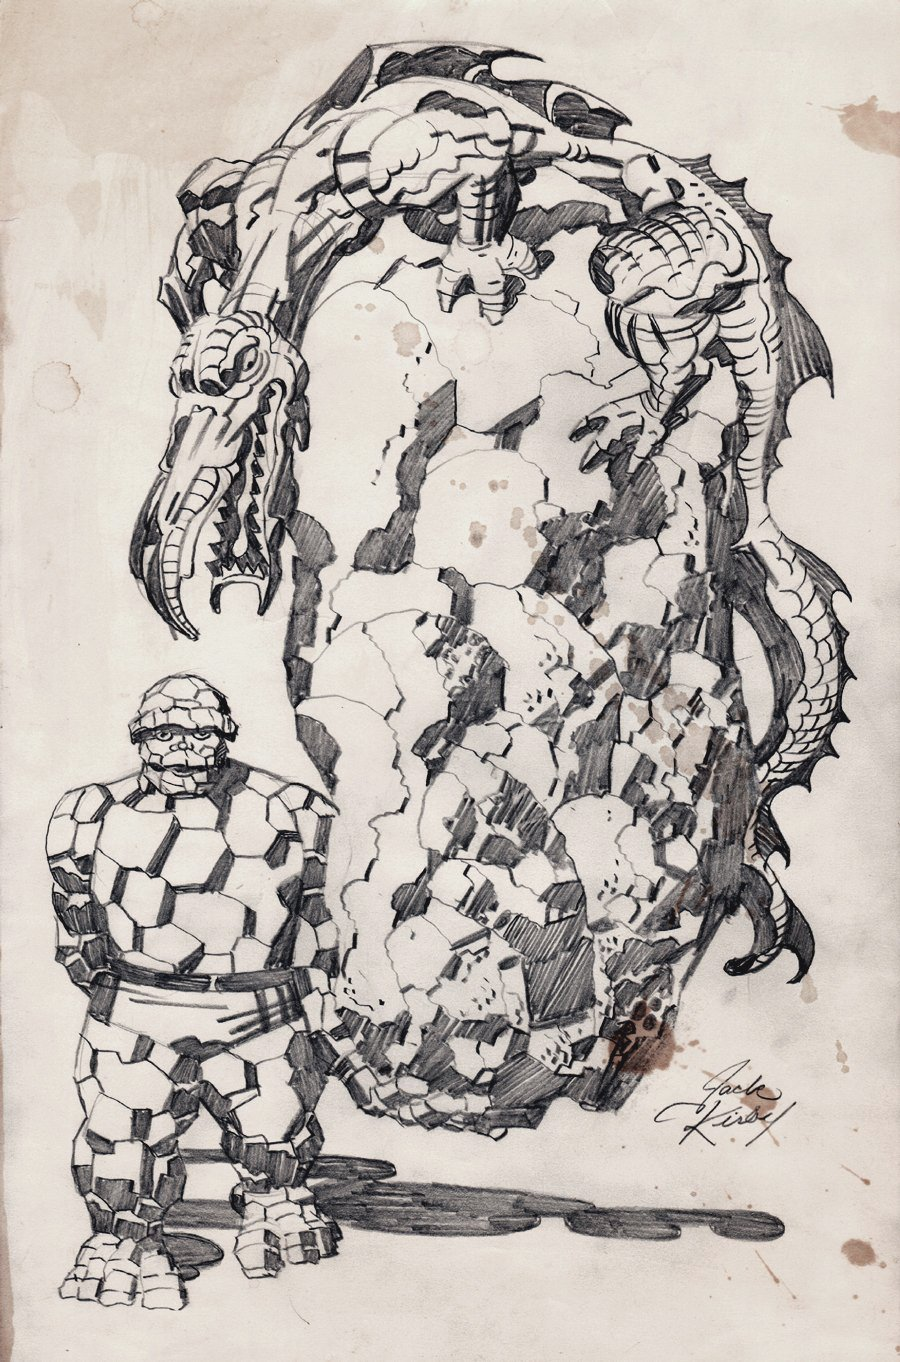 Silver Age Cover Sized Thing & Reptile Monster Fully Penciled Pinup! (1960s)